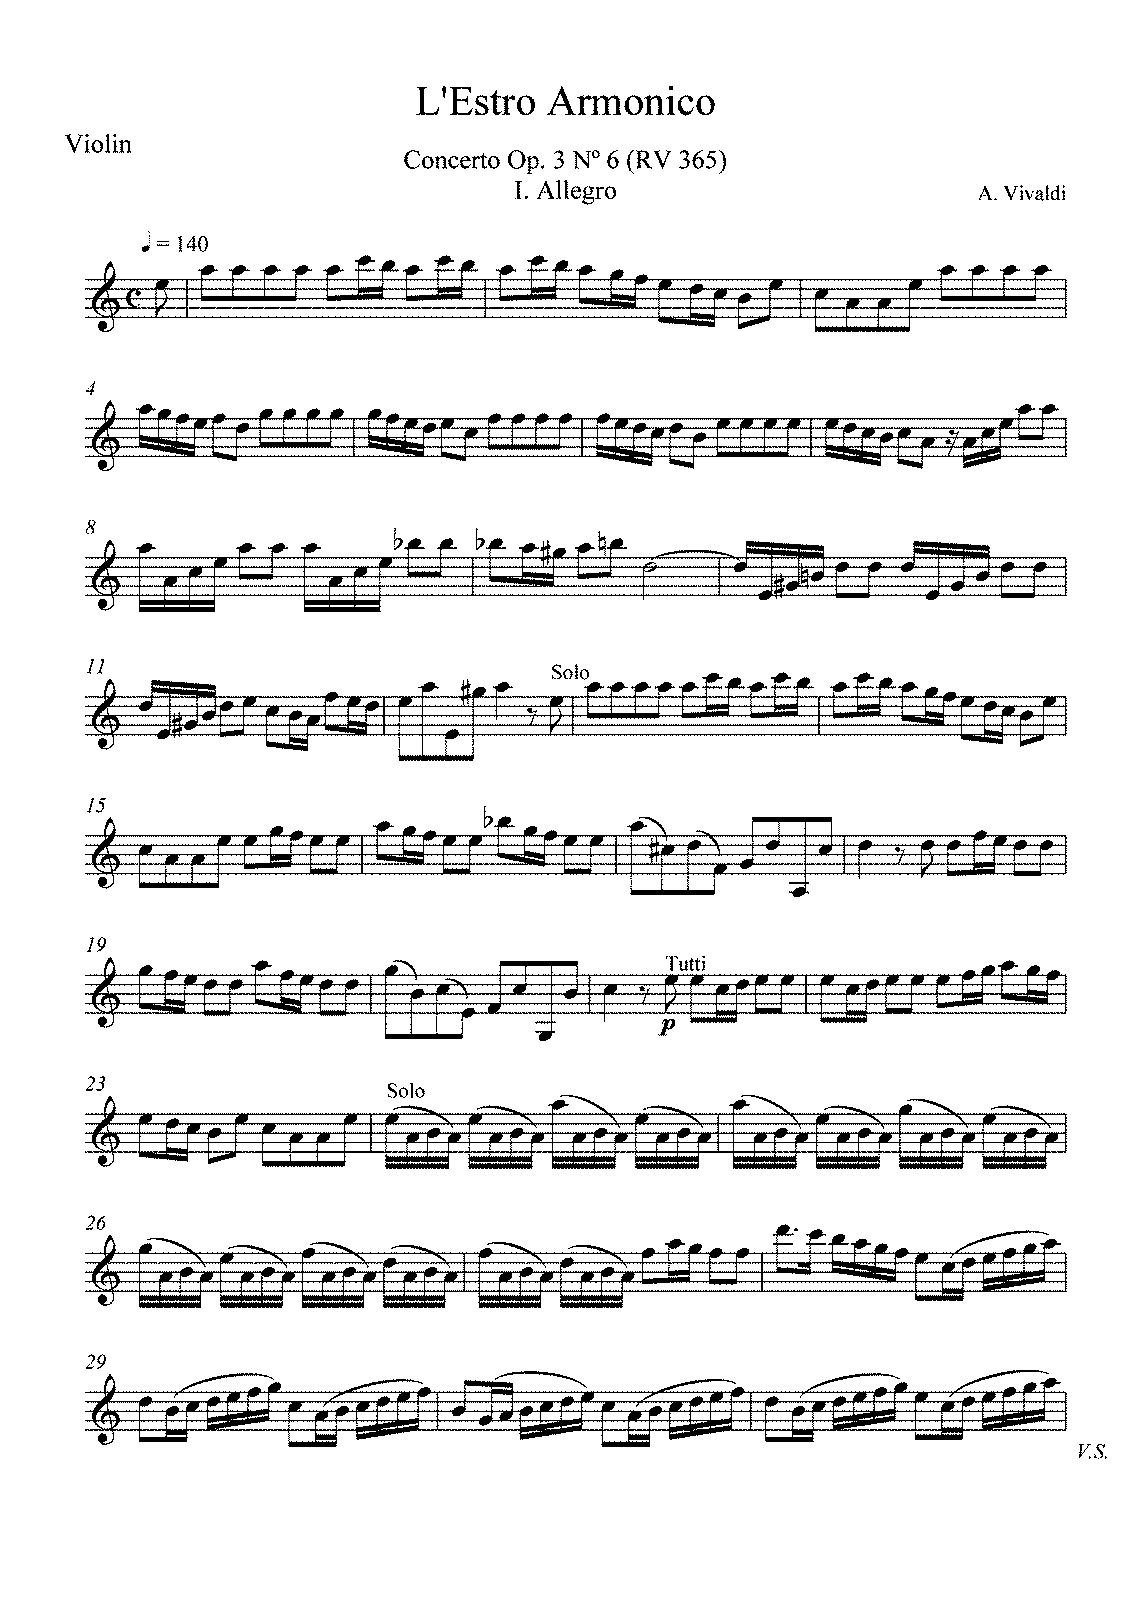 PMLP126411-Vivaldi, a minor rv 356.solo.pdf